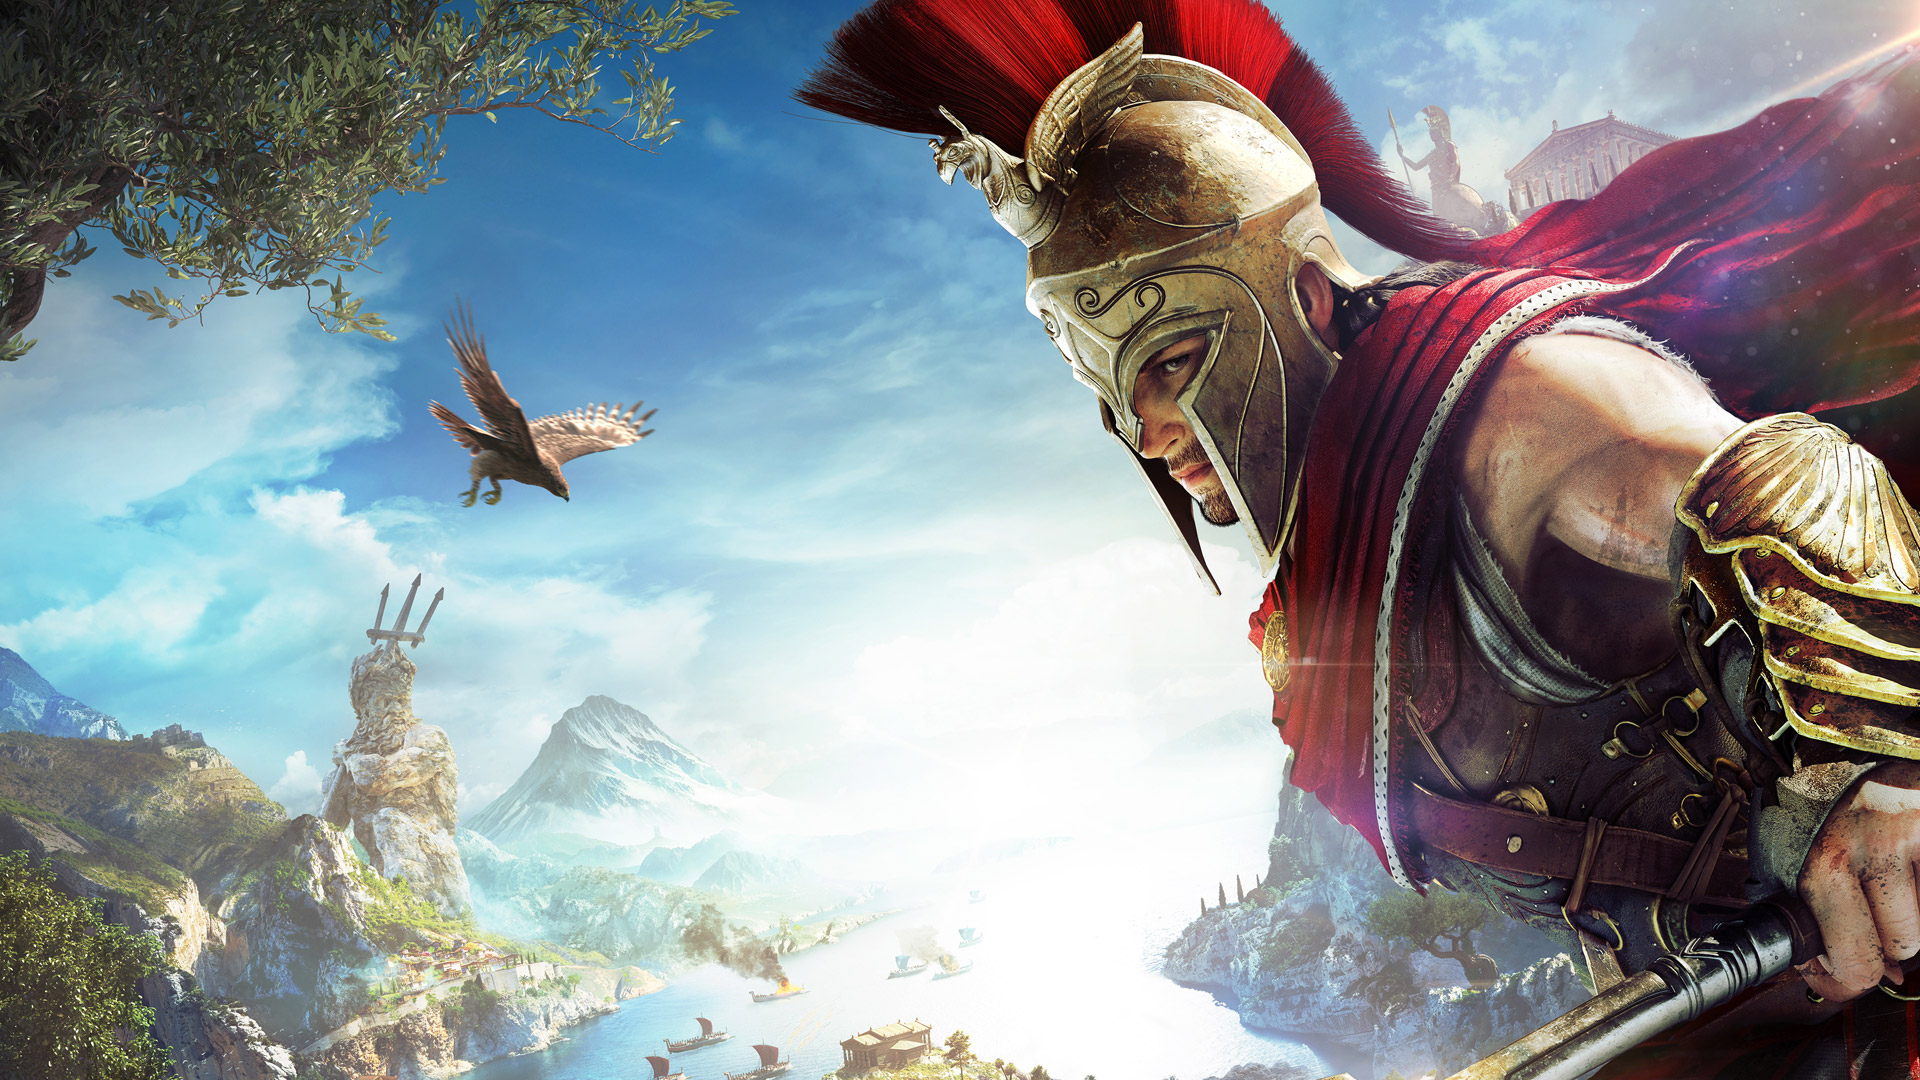 Free Assassin's Creed Odyssey Wallpaper in 1920x1080